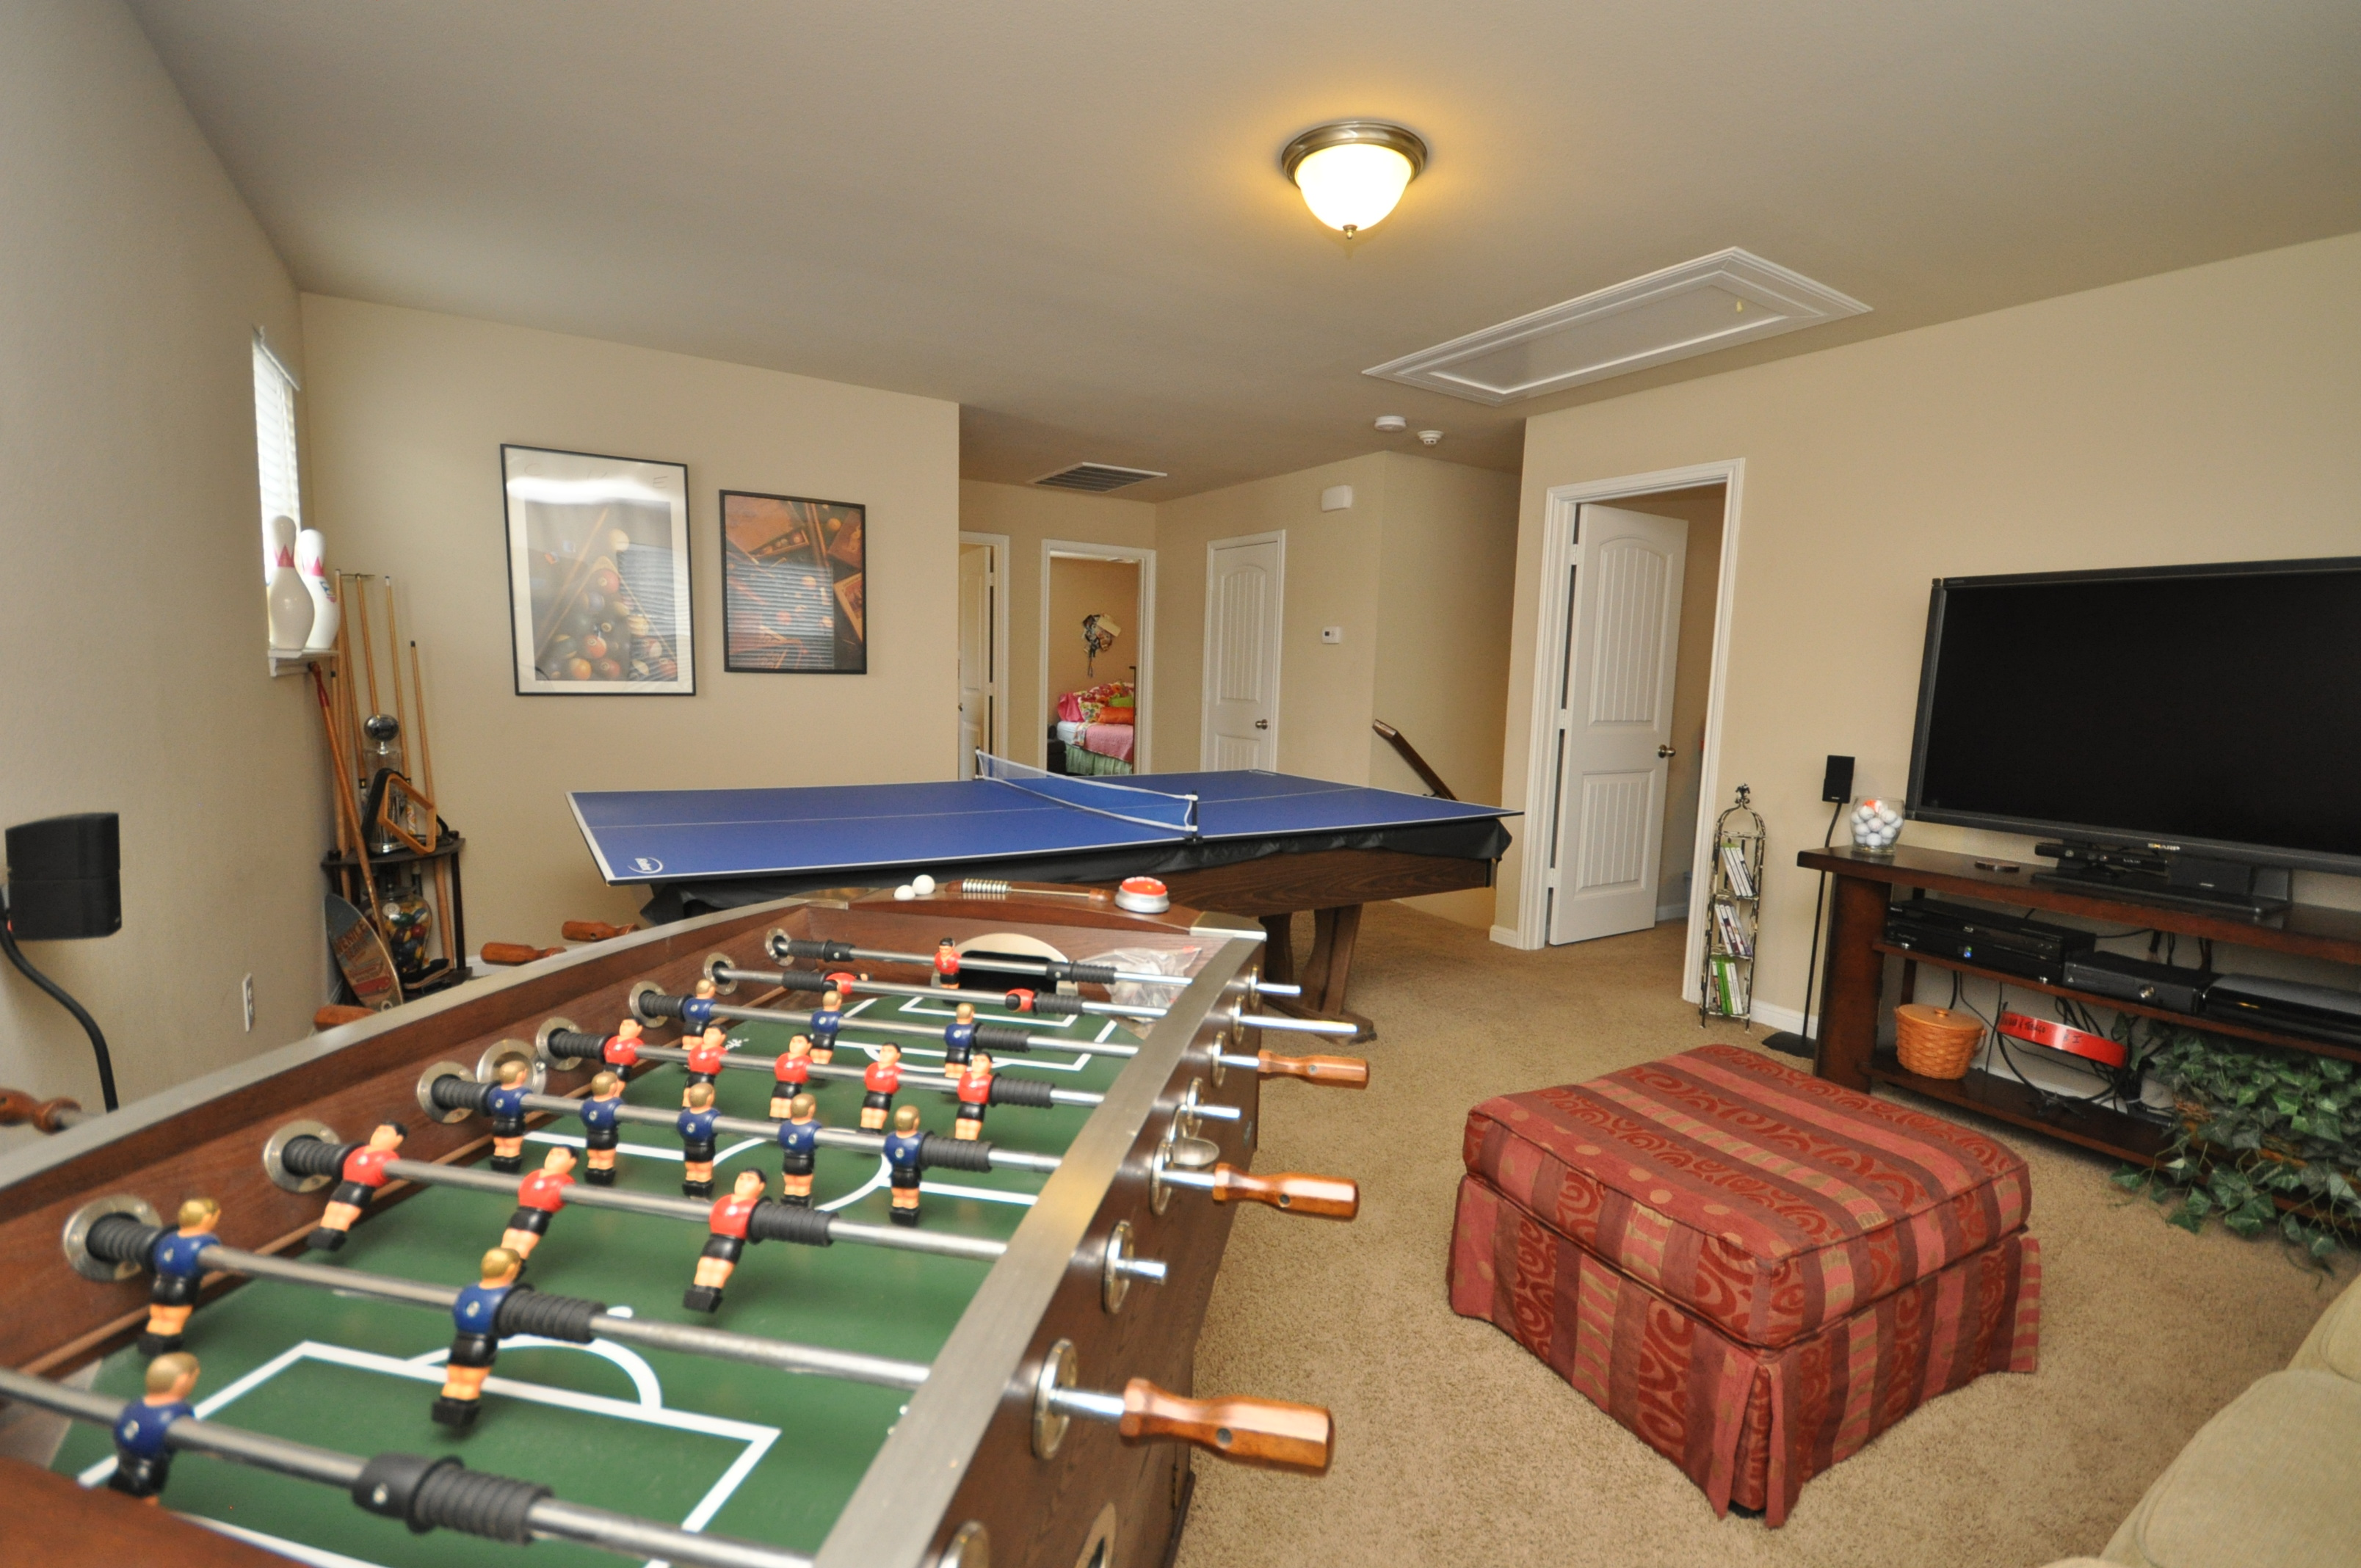 Cibolo canyon ventanas energy efficient home for sale in for Rooms to go kids san antonio